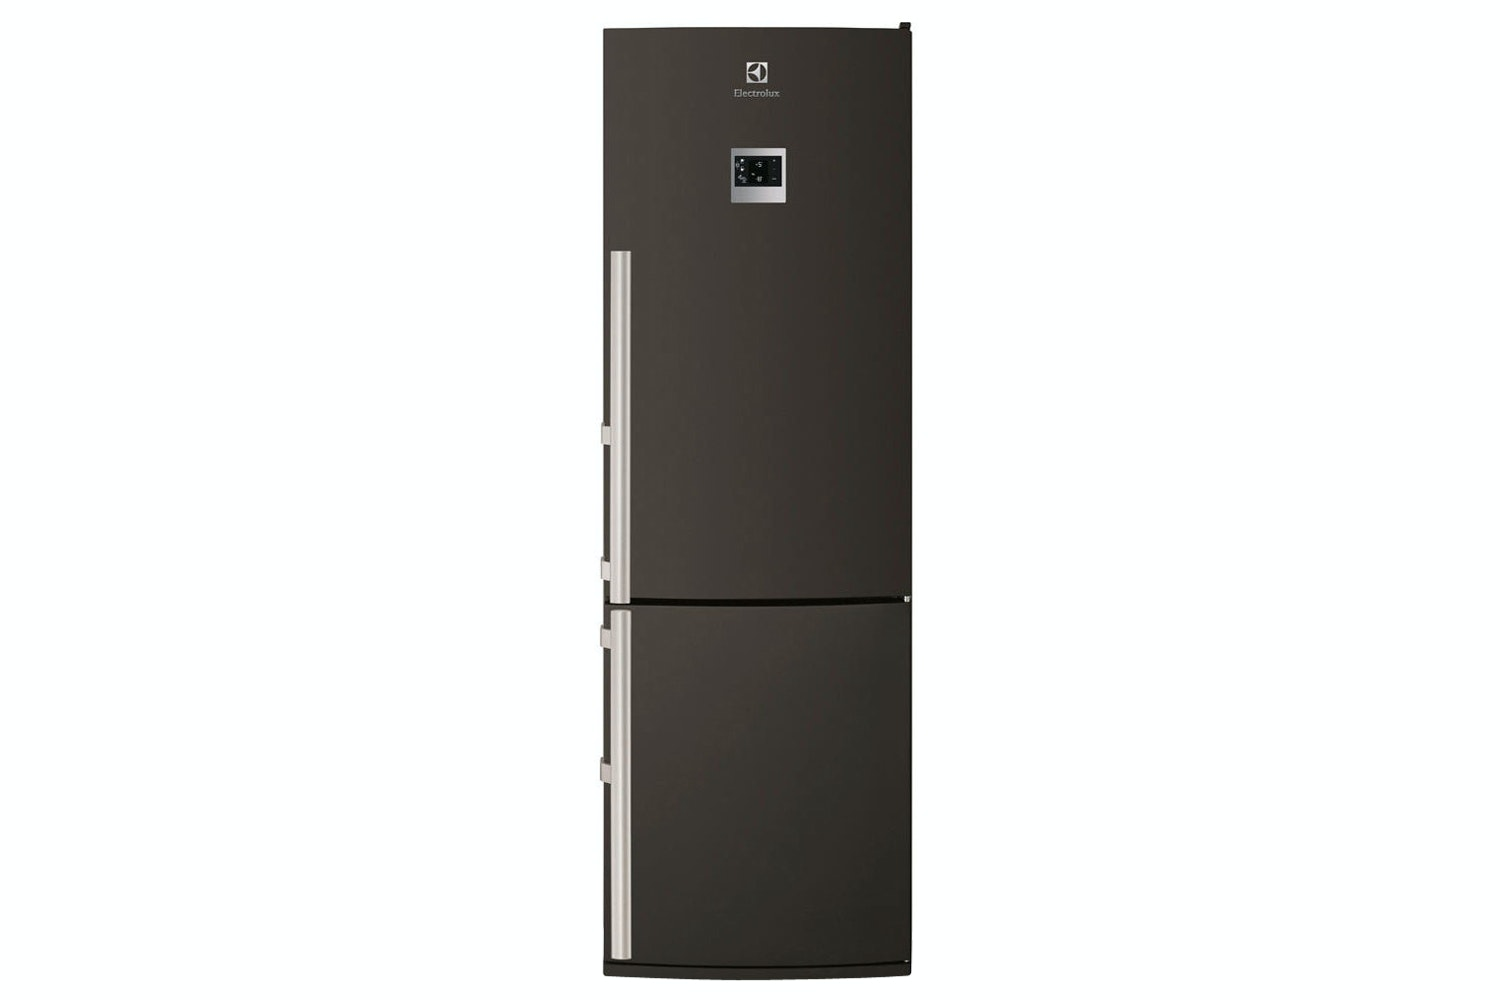 electrolux fridge. electrolux brown fridge freezer | en3487aoo